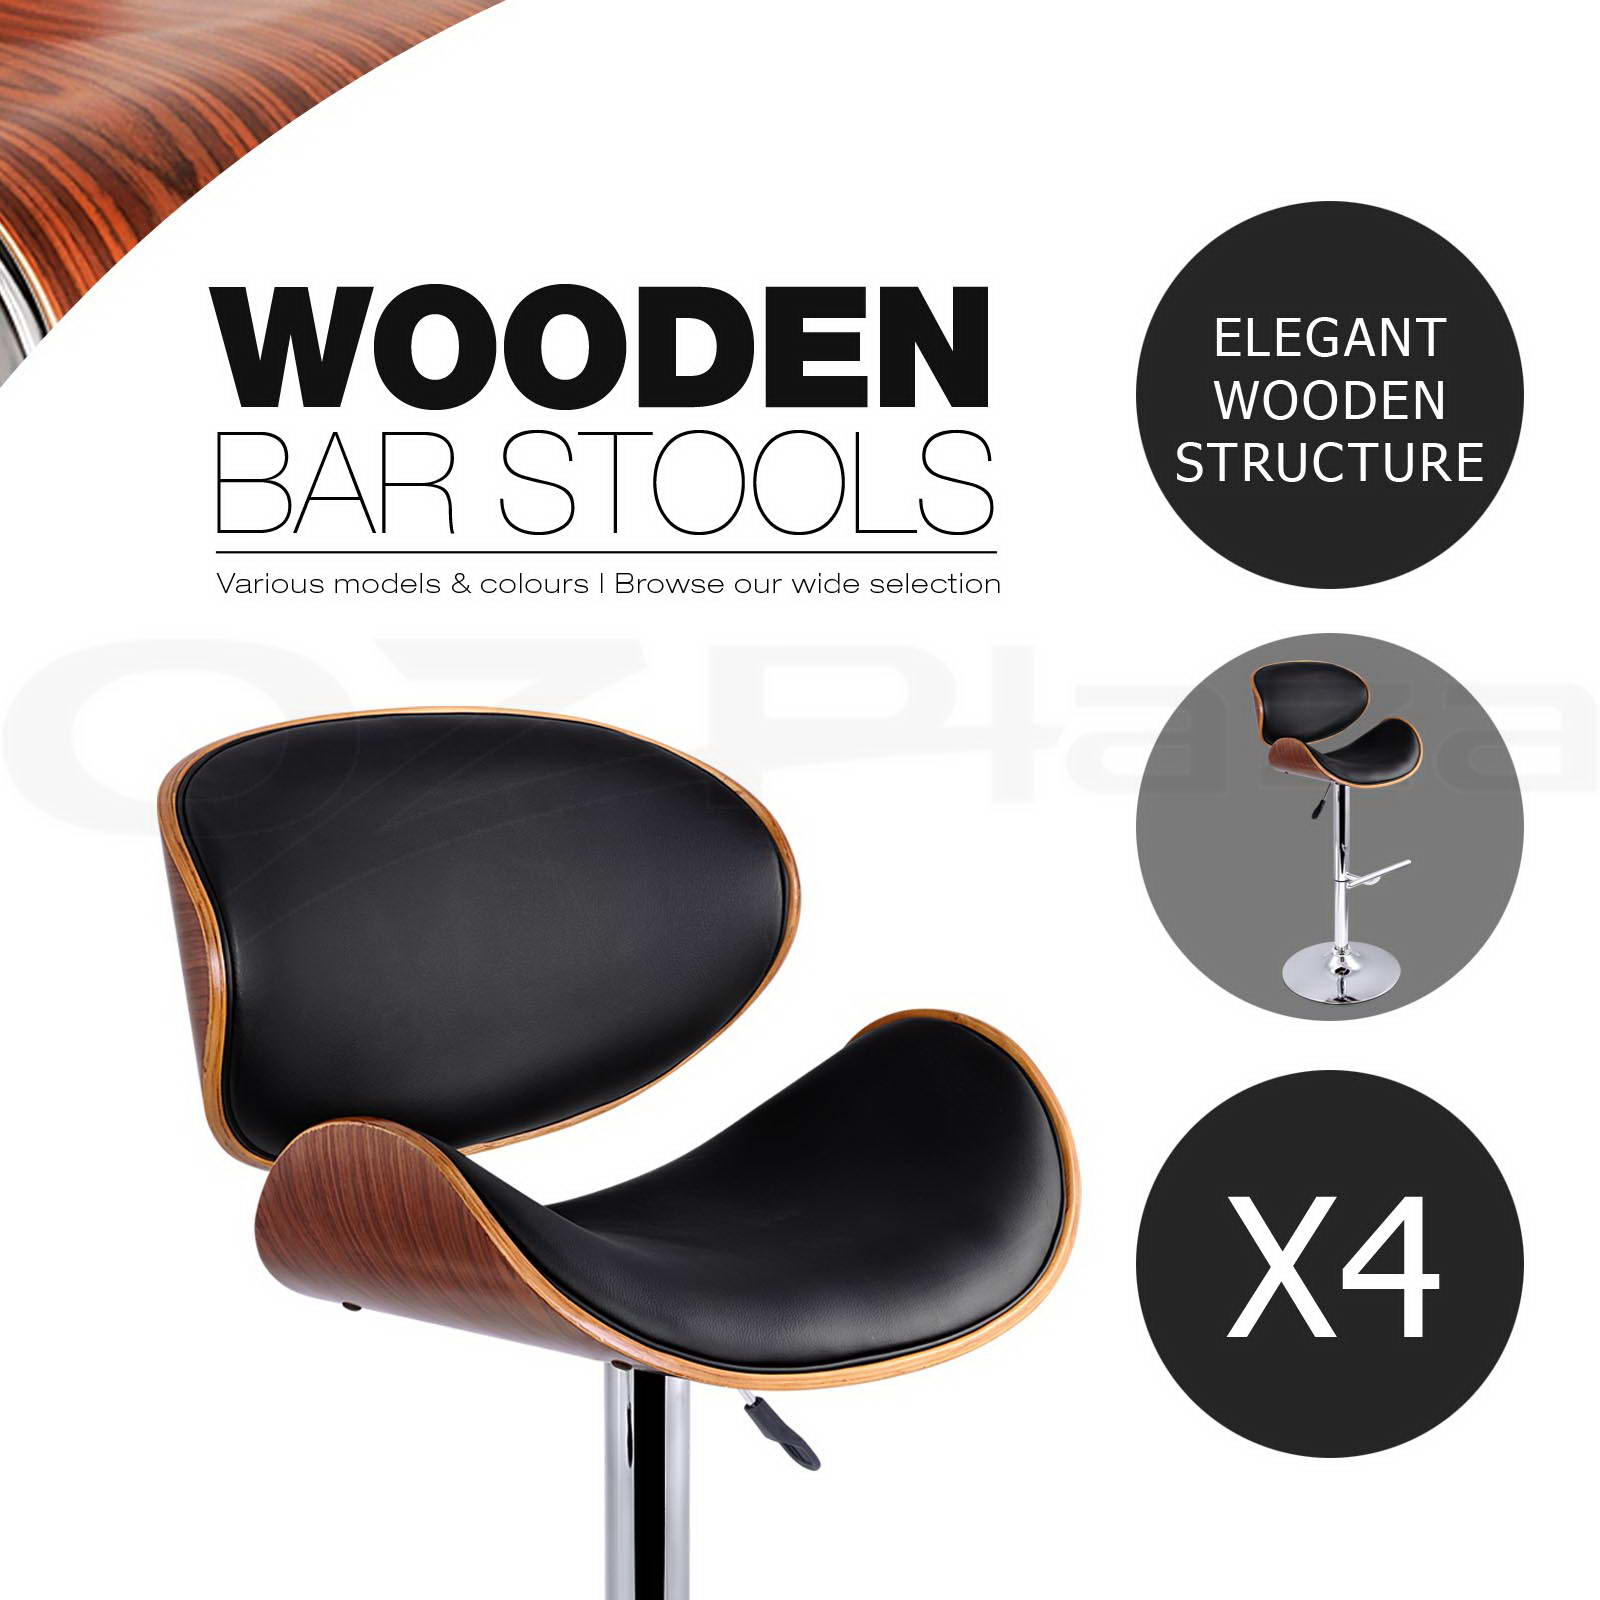 4 X Wooden Bar Stool Barstool Kitchen Dining Chair Black